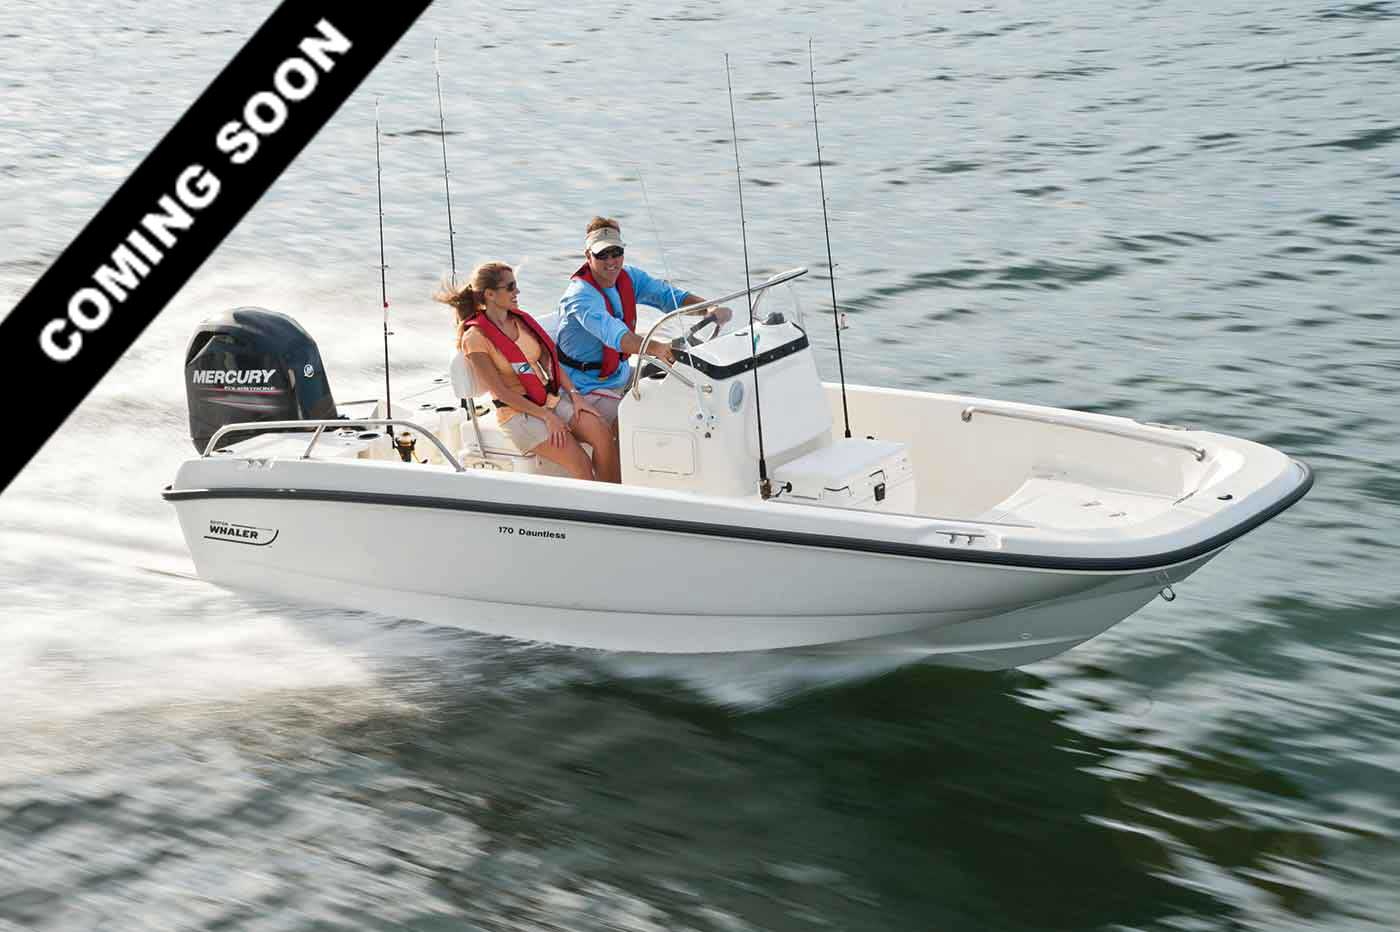 For Sale: 2019 Boston Whaler 170 Dauntless 17ft<br/>Trudeau's Sea Ray - Spokane